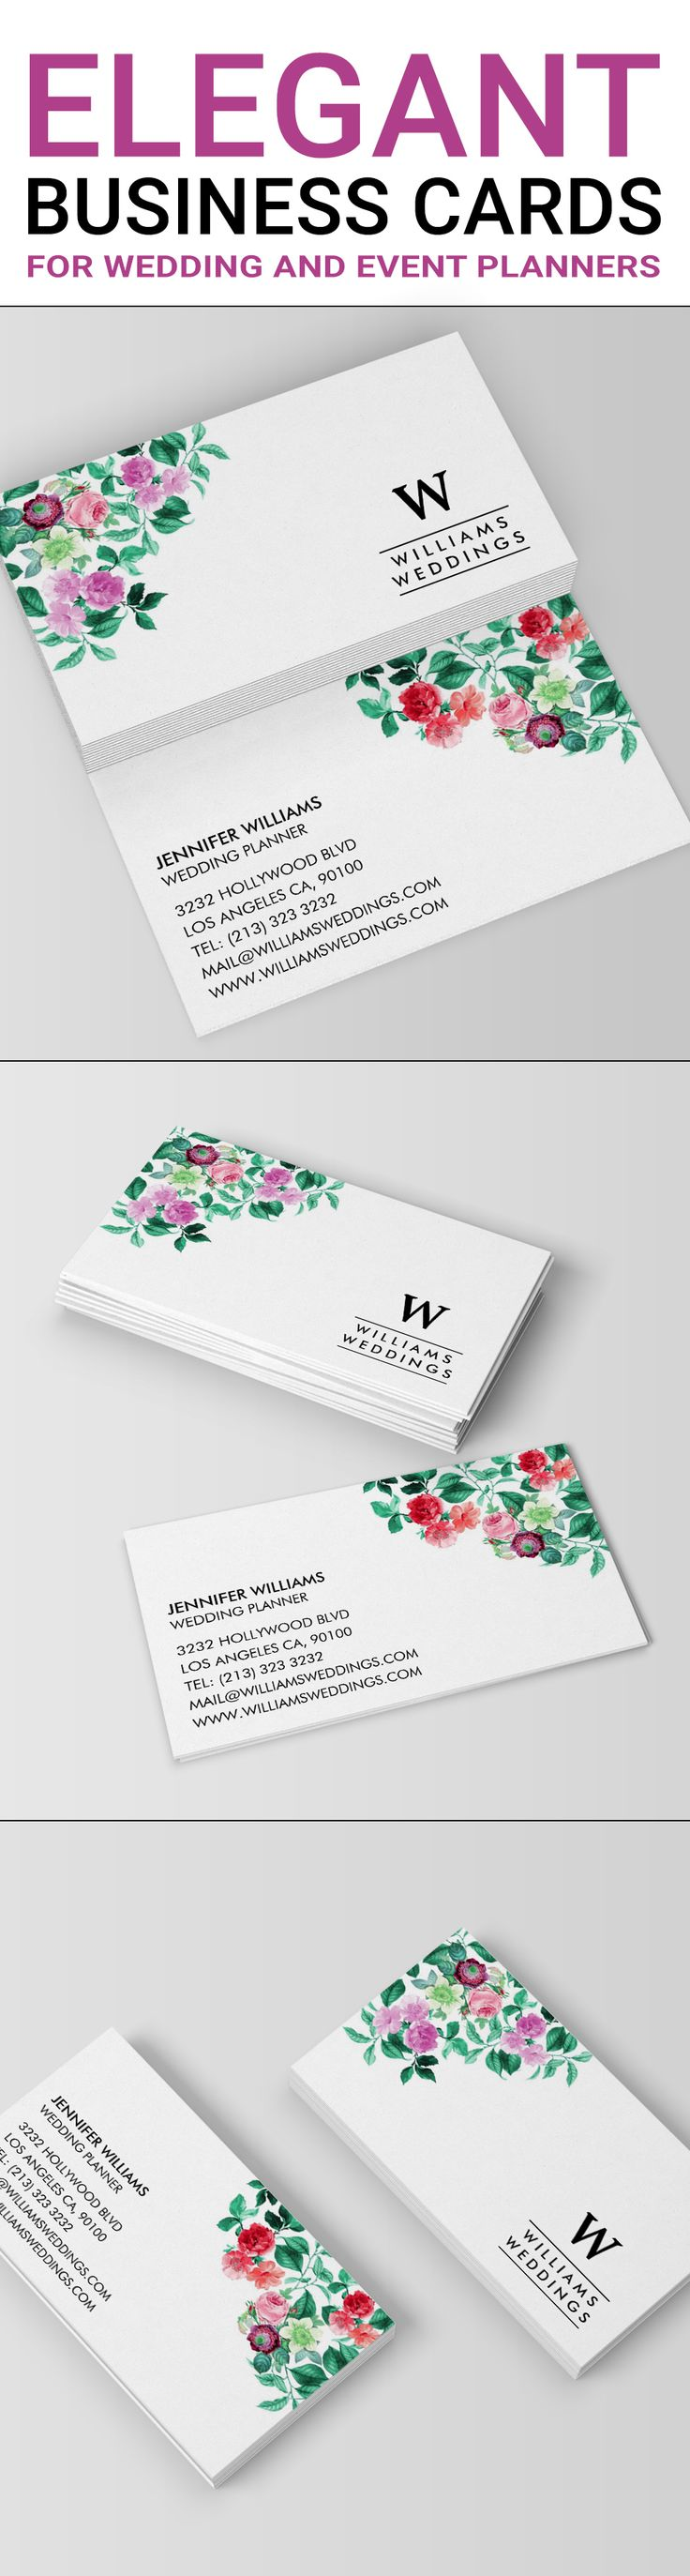 Best 25 free business cards ideas on pinterest free business elegant floral flower wedding event planner business card magicingreecefo Choice Image